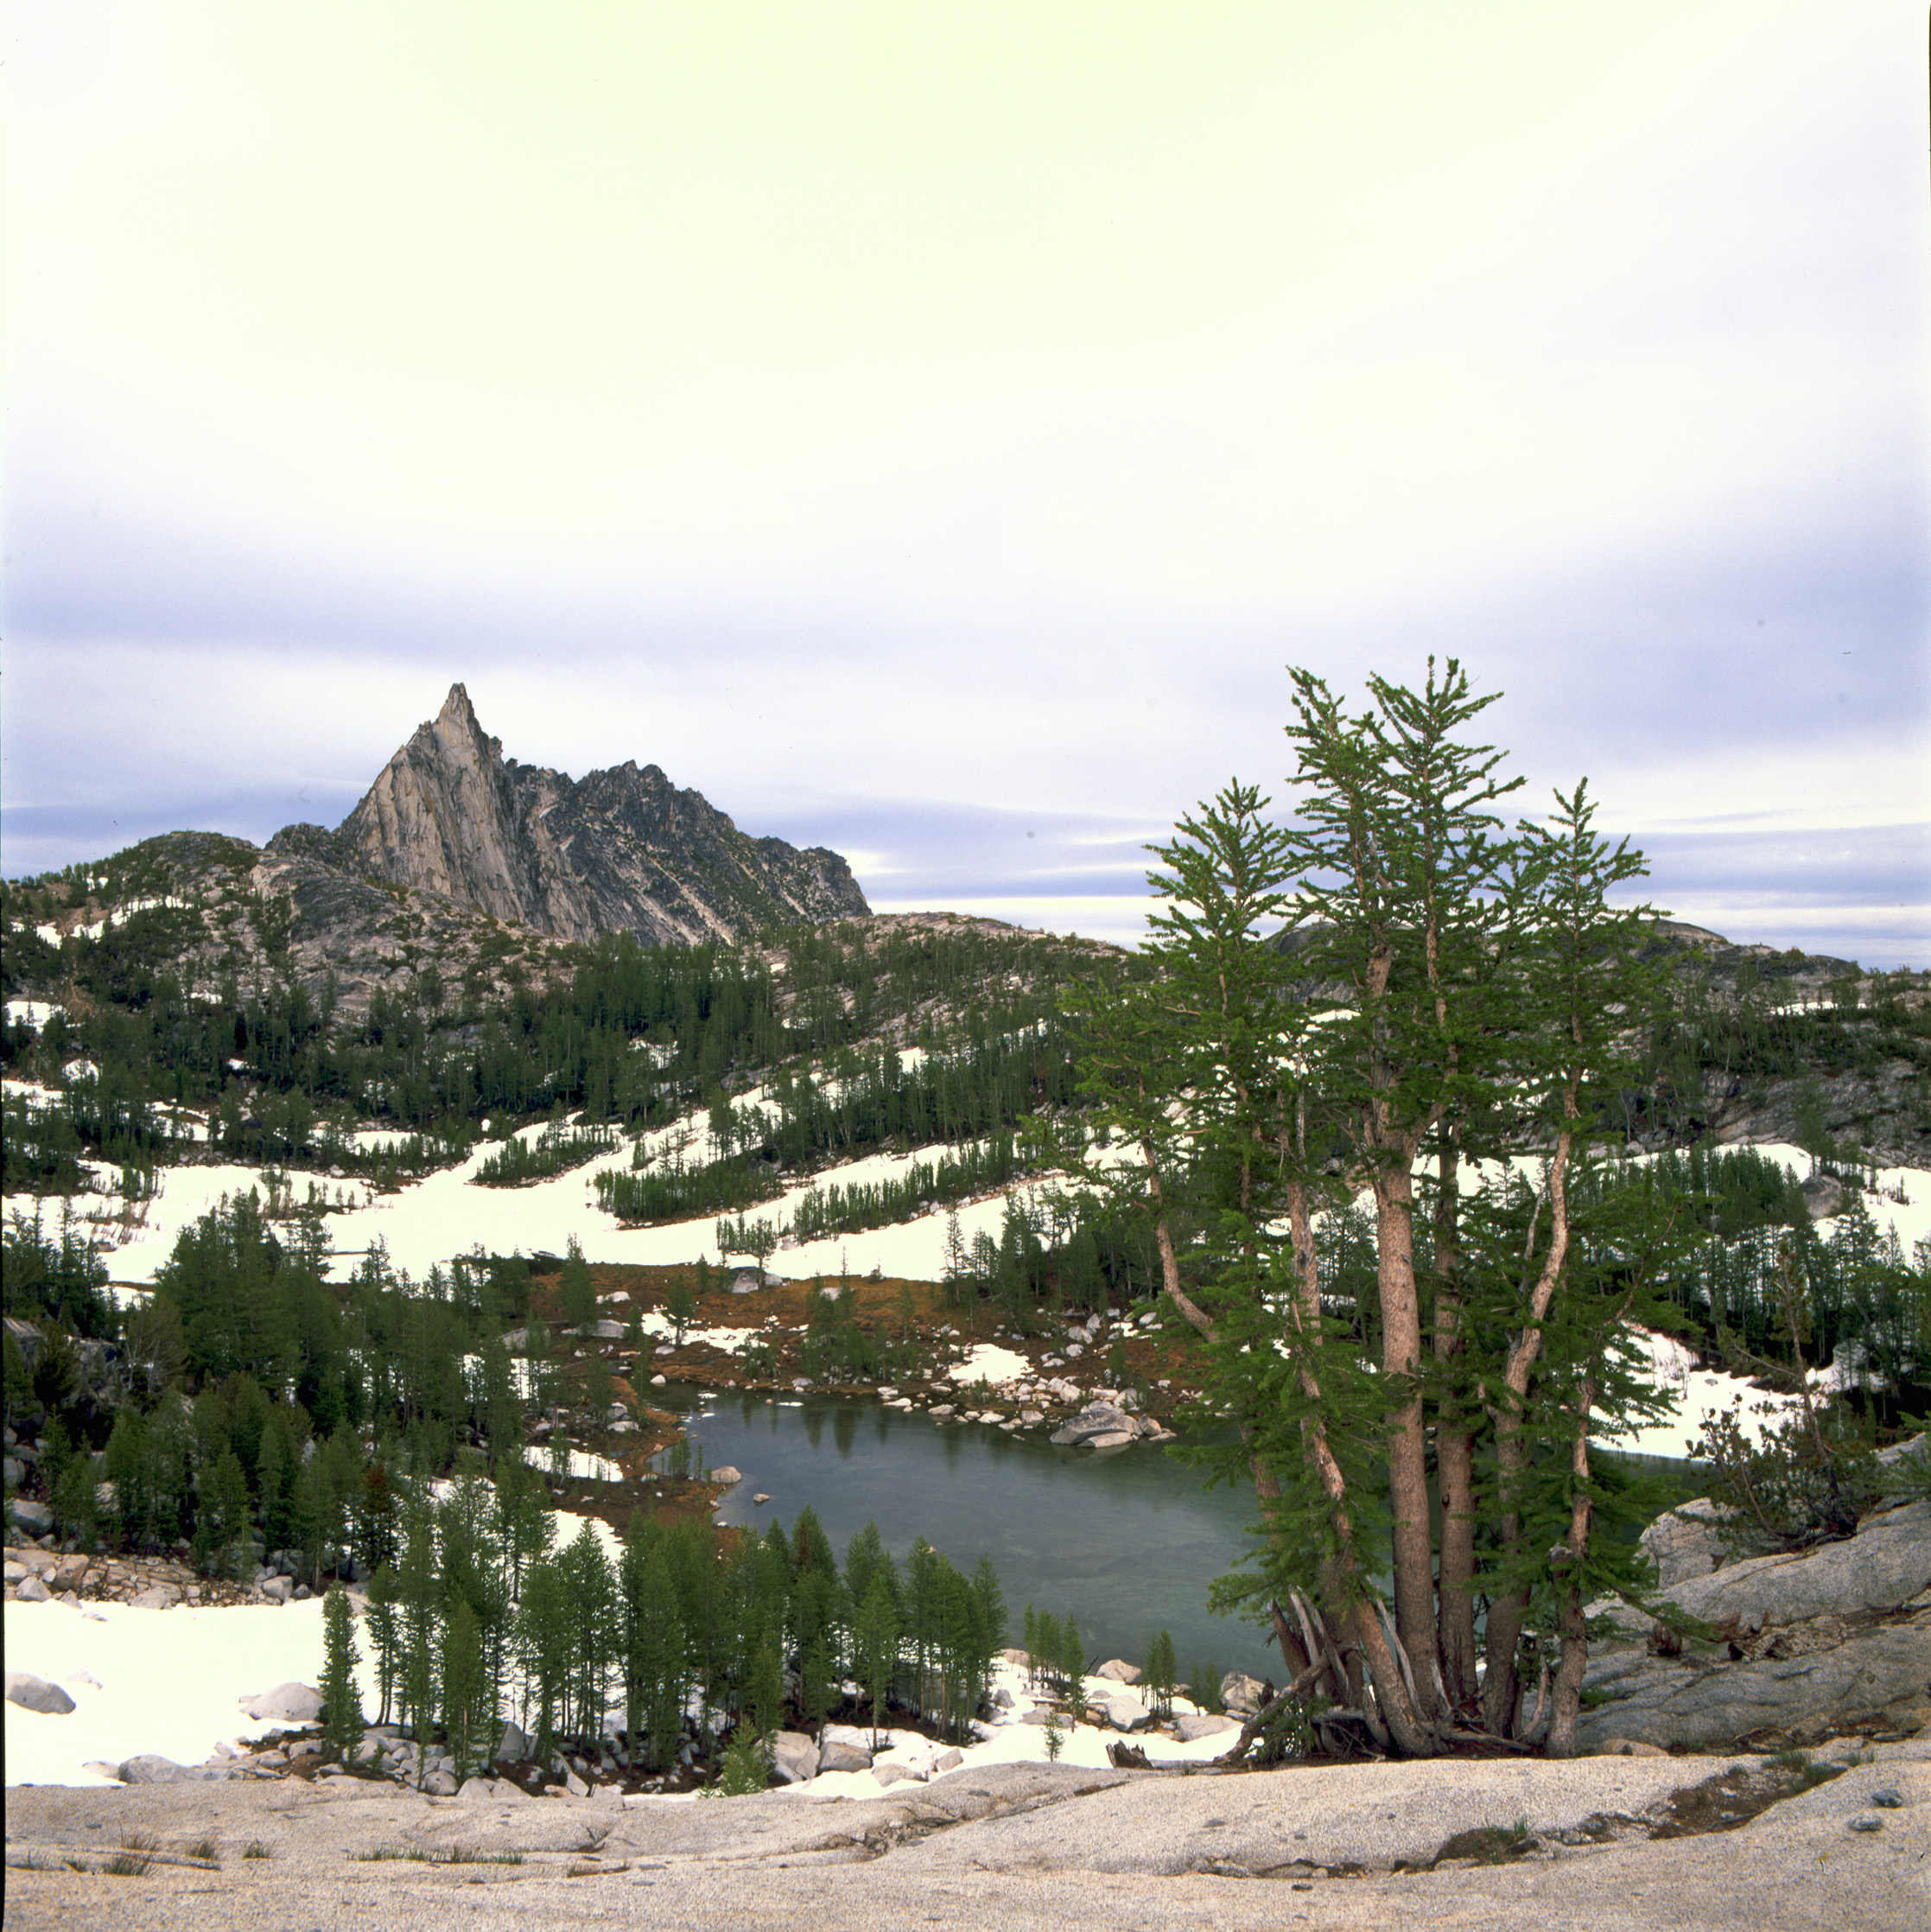 Prusik Peak  - Prusik Peak hanging above perfection lake, with Larch Pines in the foreground.